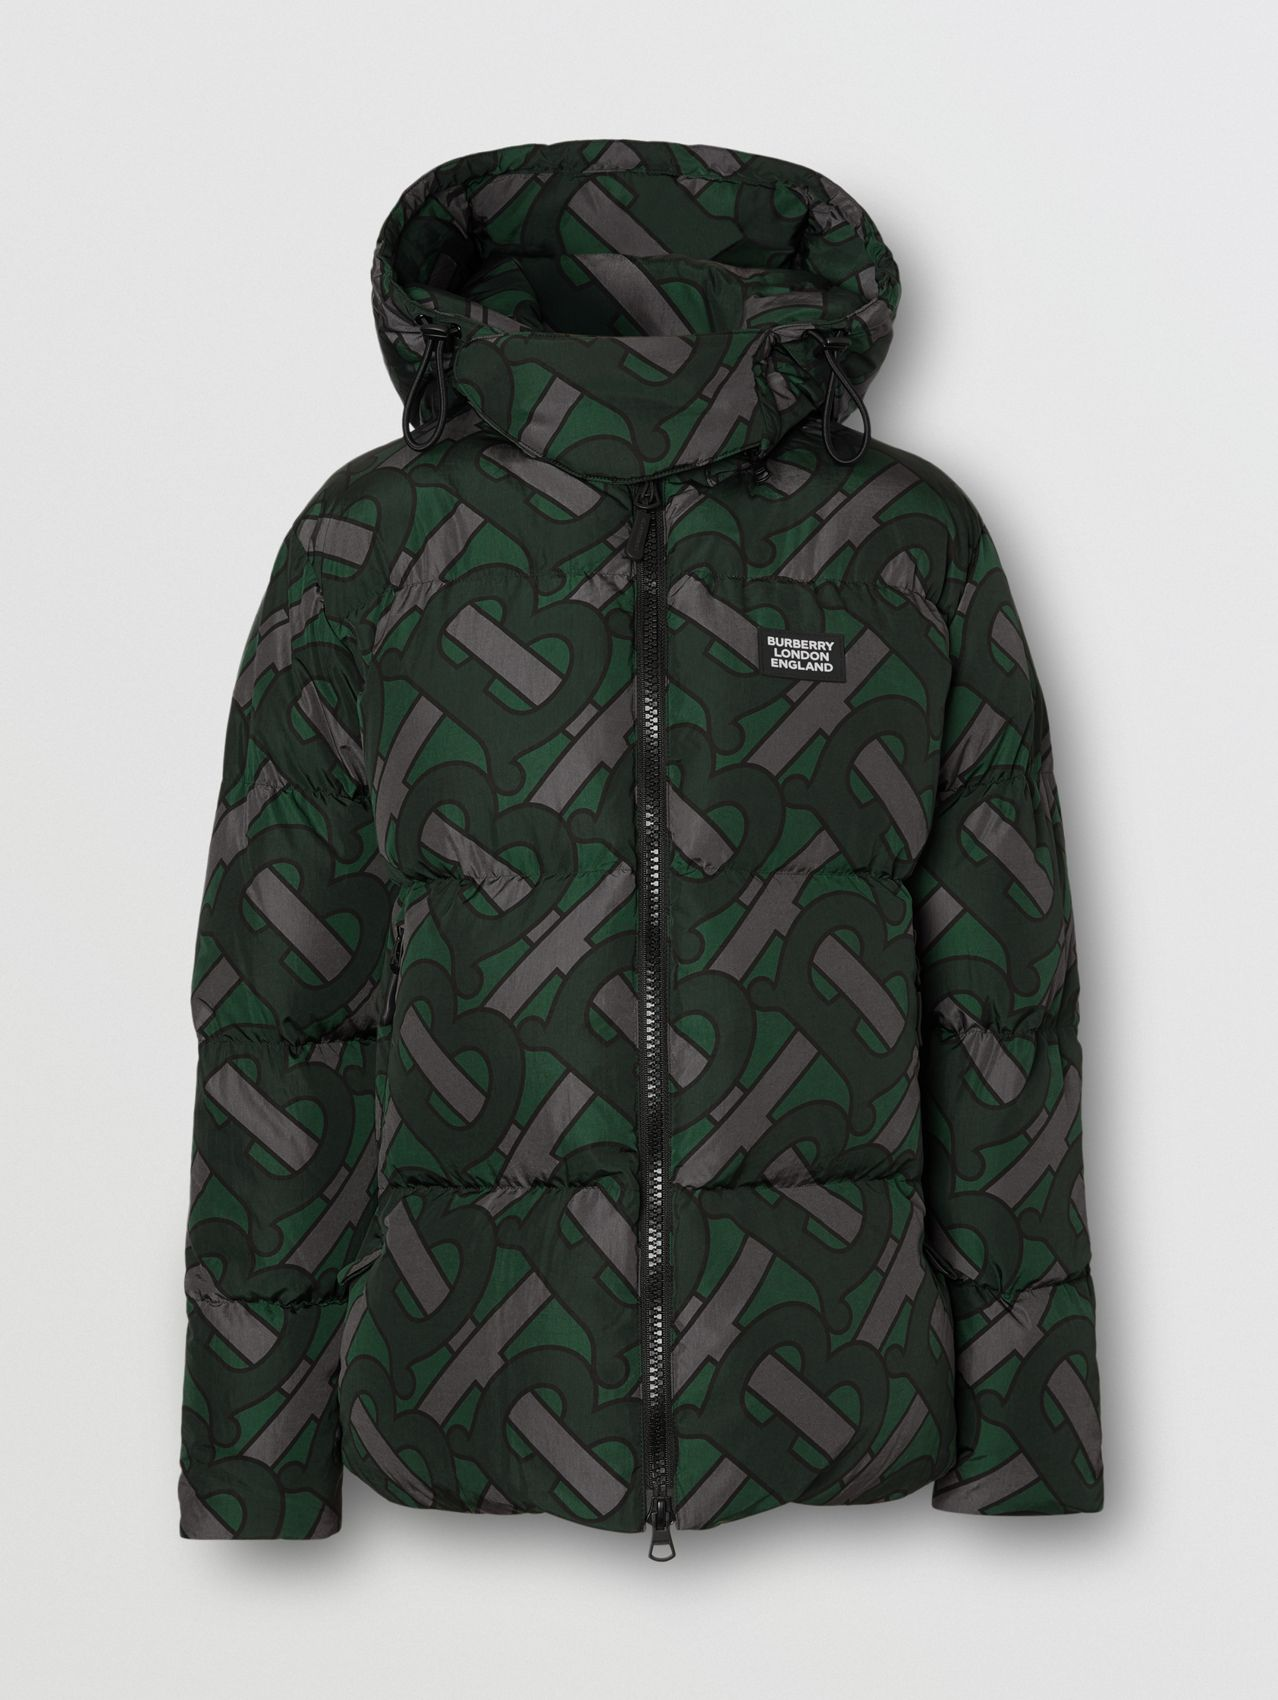 Monogram Print Puffer Jacket in Forest Green